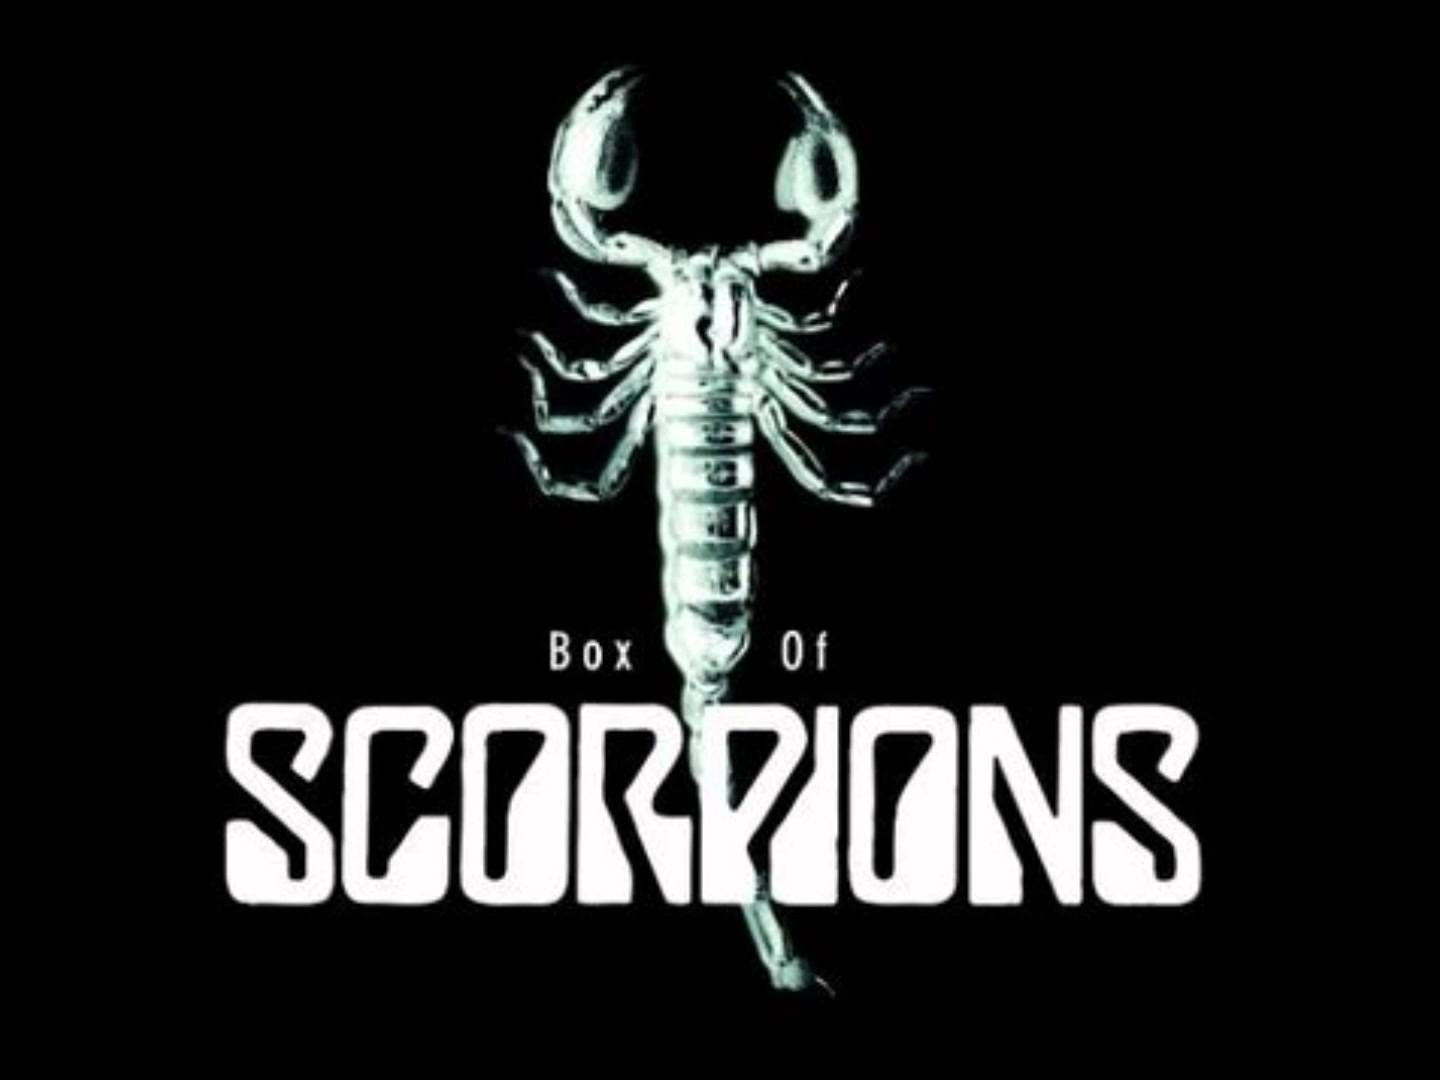 Scorpions Holiday Let Me Take You Far Away Scorpions Band Scorpions Album Covers Rock Bands